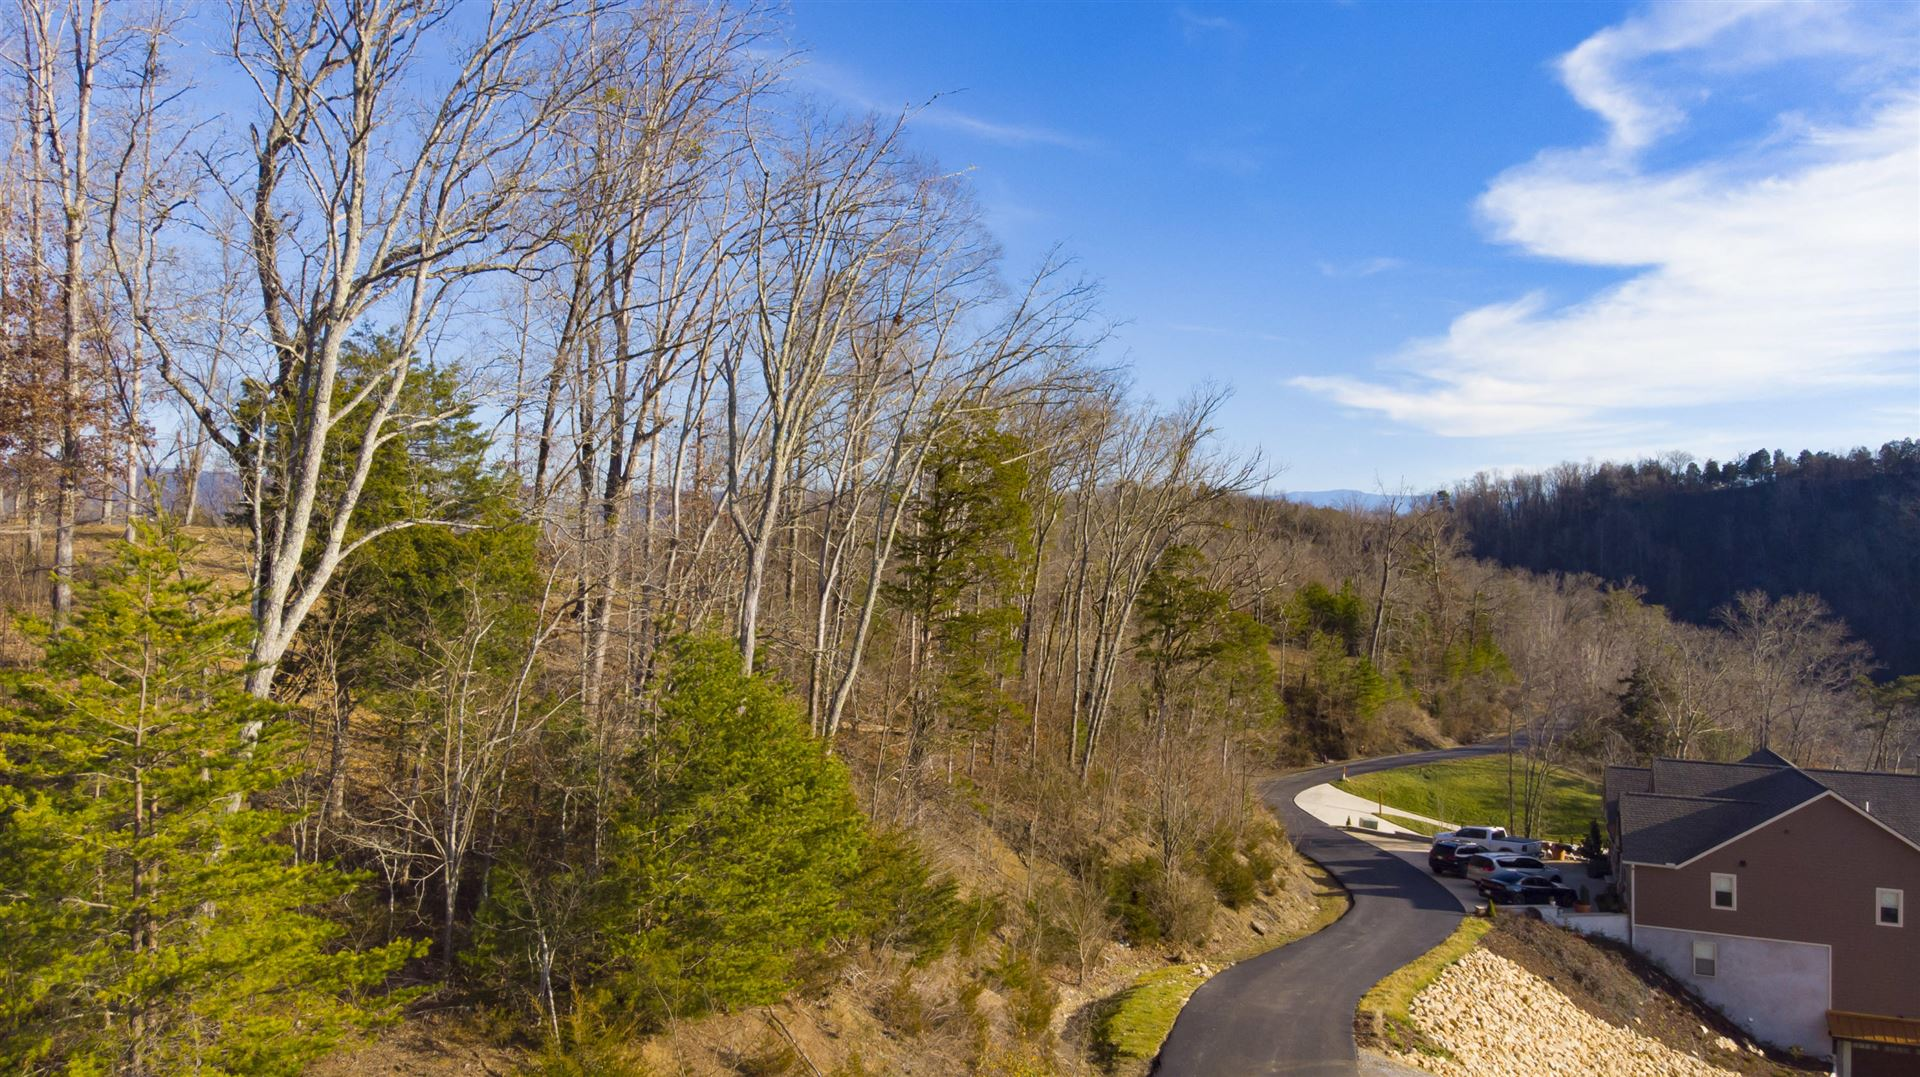 Photo of Lot 101 Sanctuary Shores Way, Sevierville, TN 37876 (MLS # 1140681)